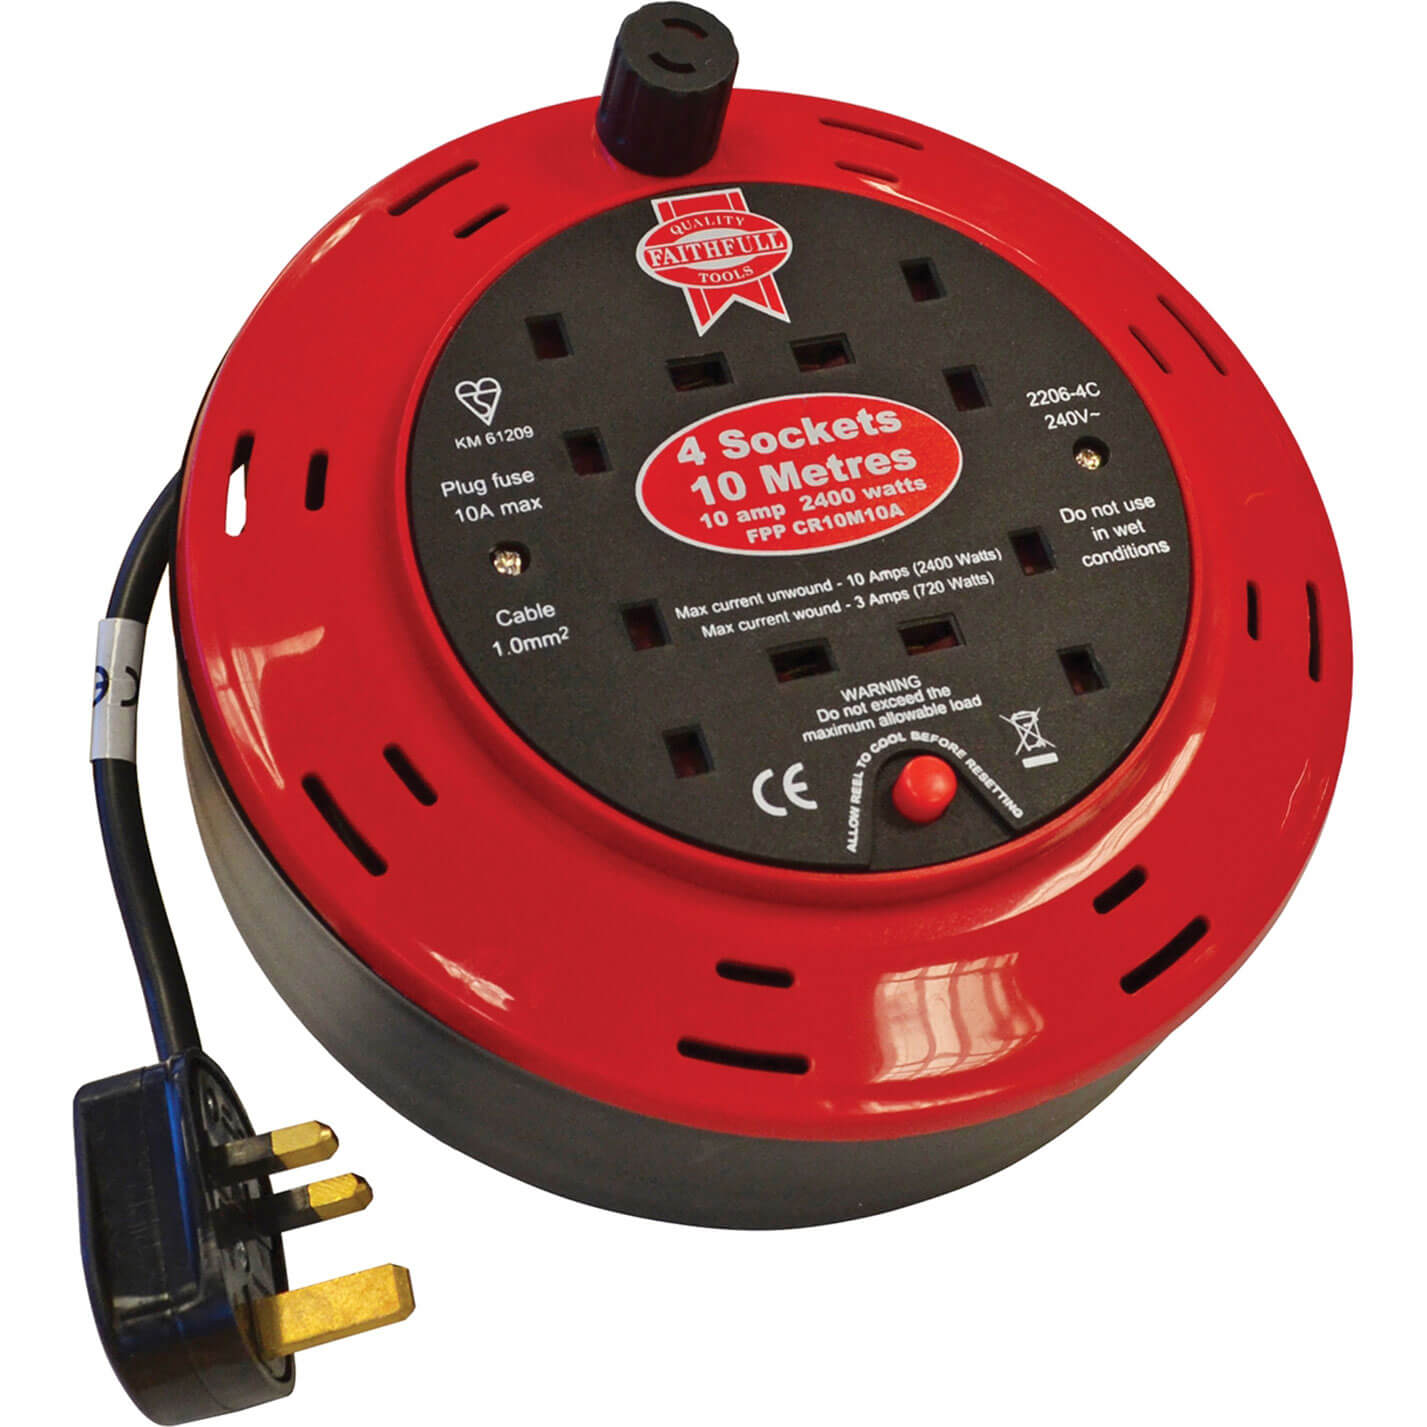 Faithfull 4 Socket Cable Reel 10m 10amp 240v